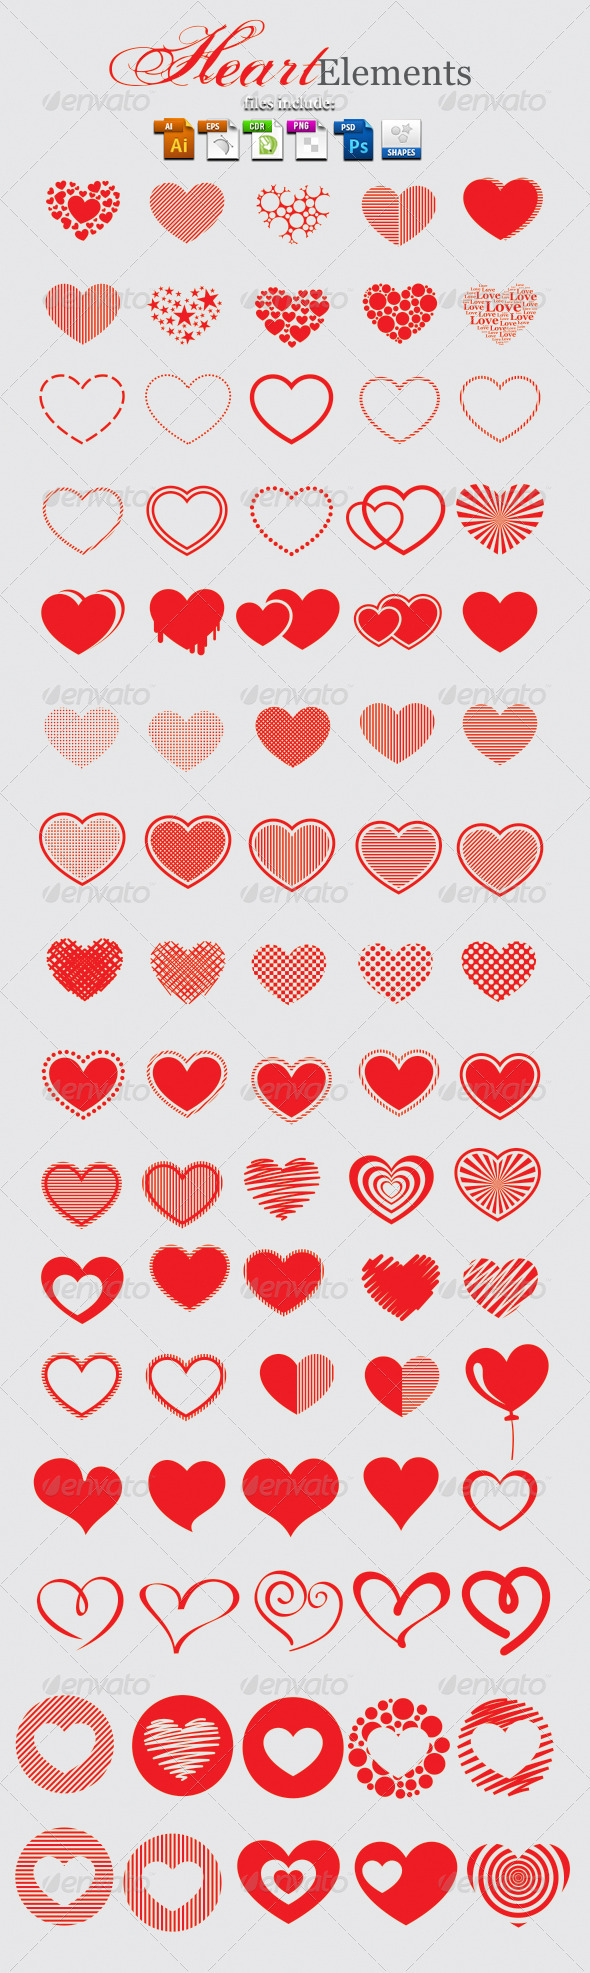 GraphicRiver Heart Elements 3867613